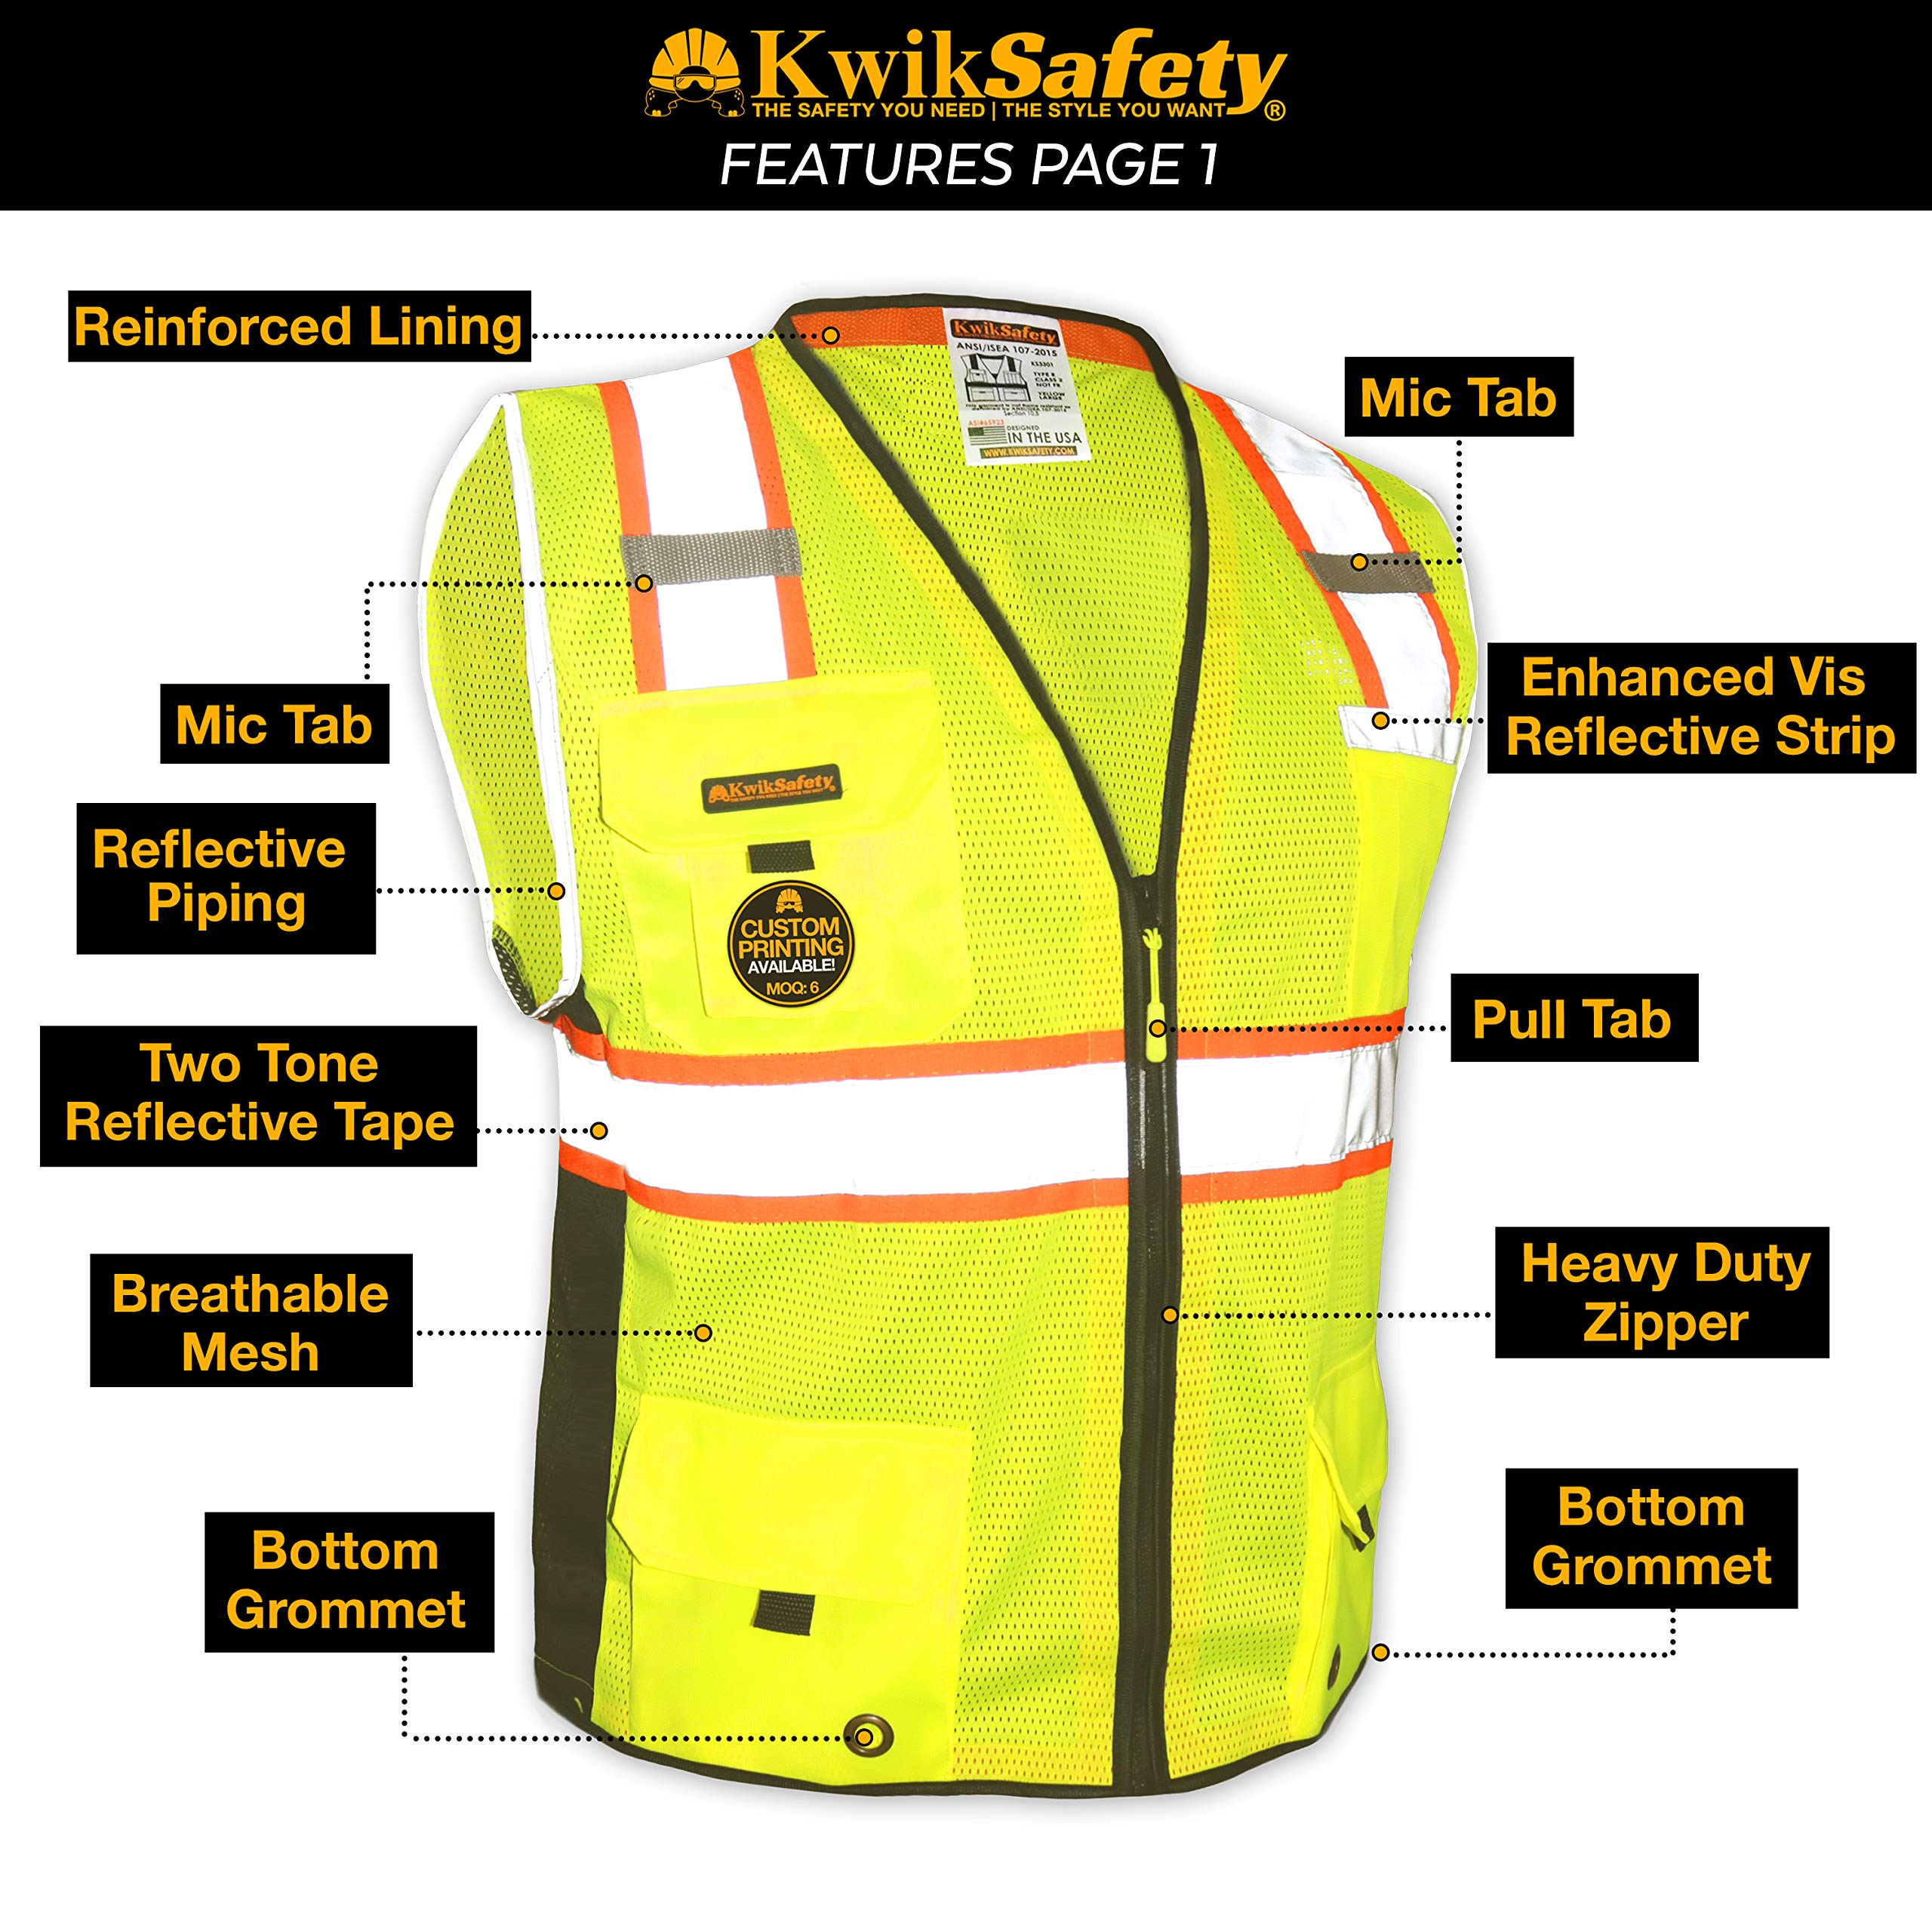 KwikSafety (Charlotte, NC) BIG KAHUNA (11 Pockets) Class 2 ANSI High Visibility Reflective Safety Vest Heavy Duty Mesh with Zipper and HiVis for OSHA Construction Work HiViz Men Yellow Black Small by KwikSafety (Image #4)